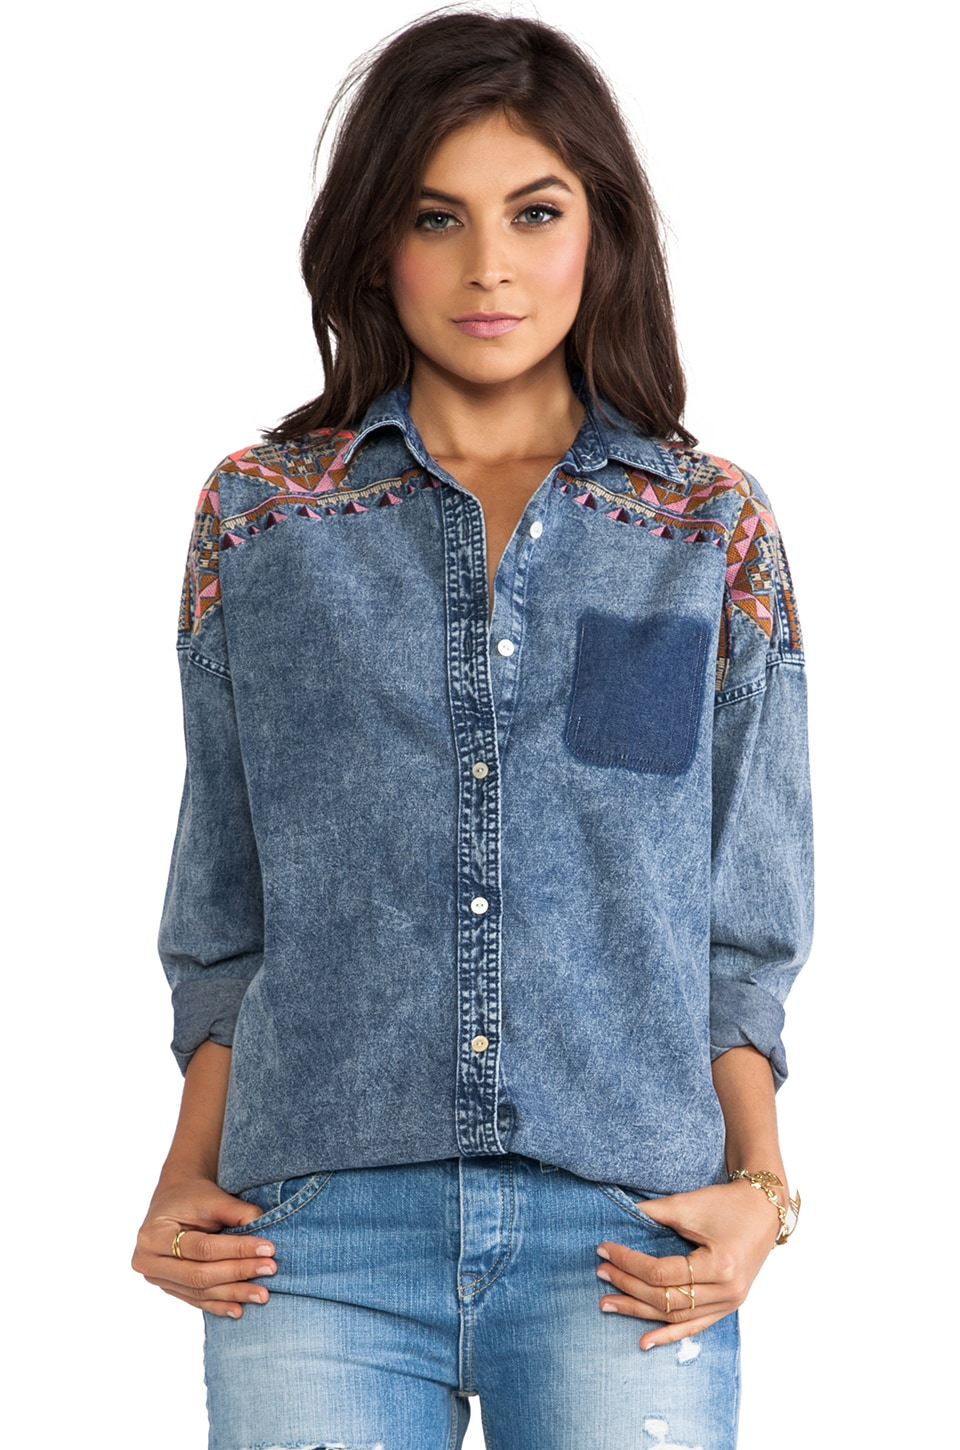 Maison Scotch Denim Shirt in Med Blue